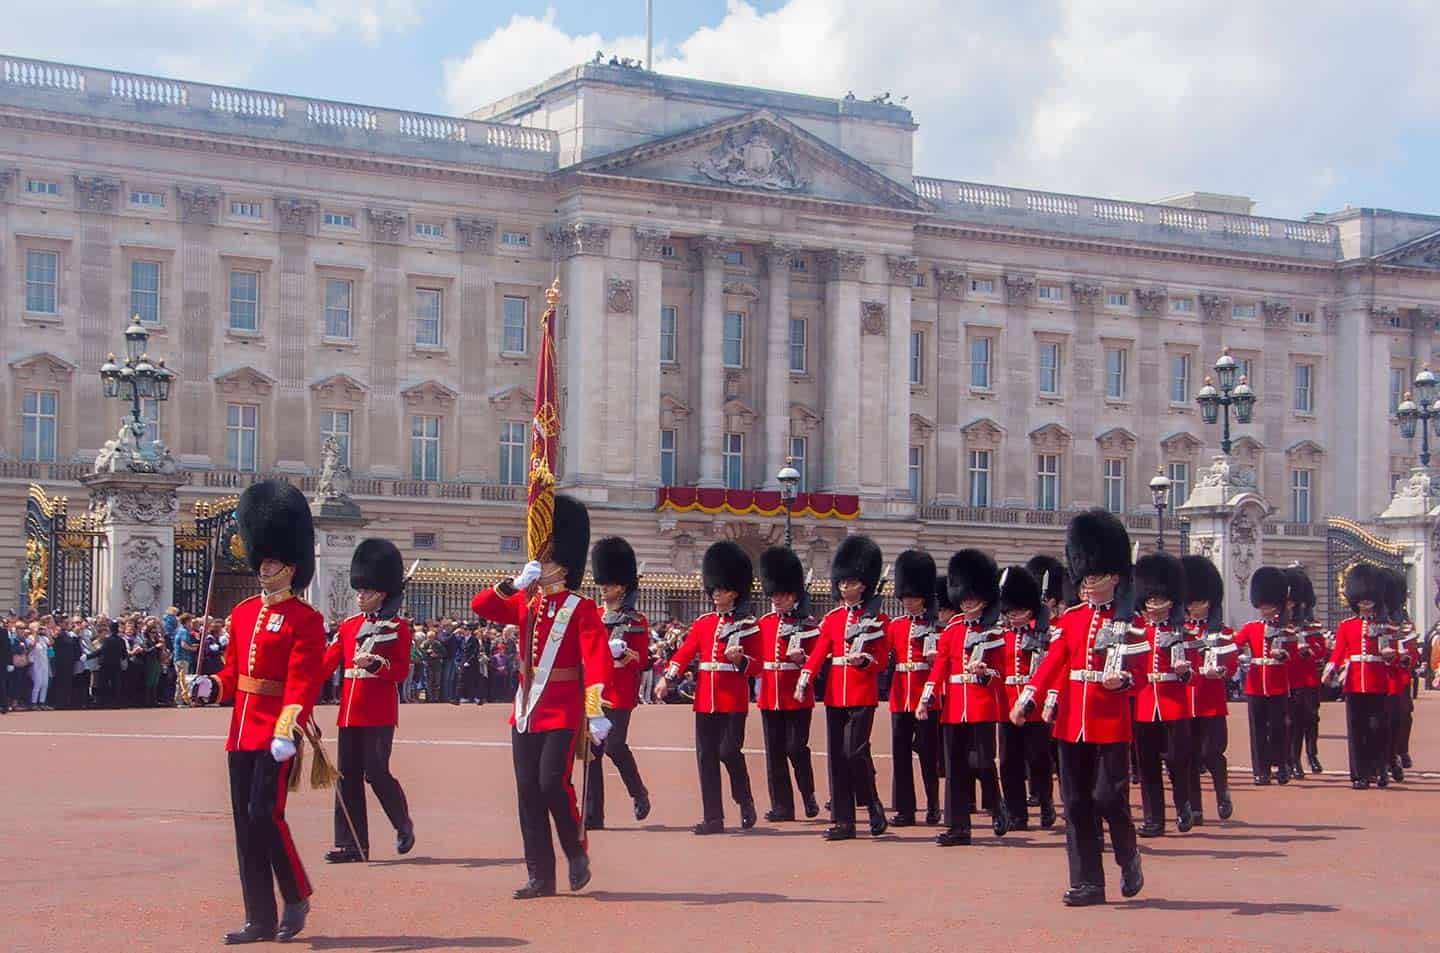 Image of the Changing of the Guard ceremony at Buckingham Palace, London